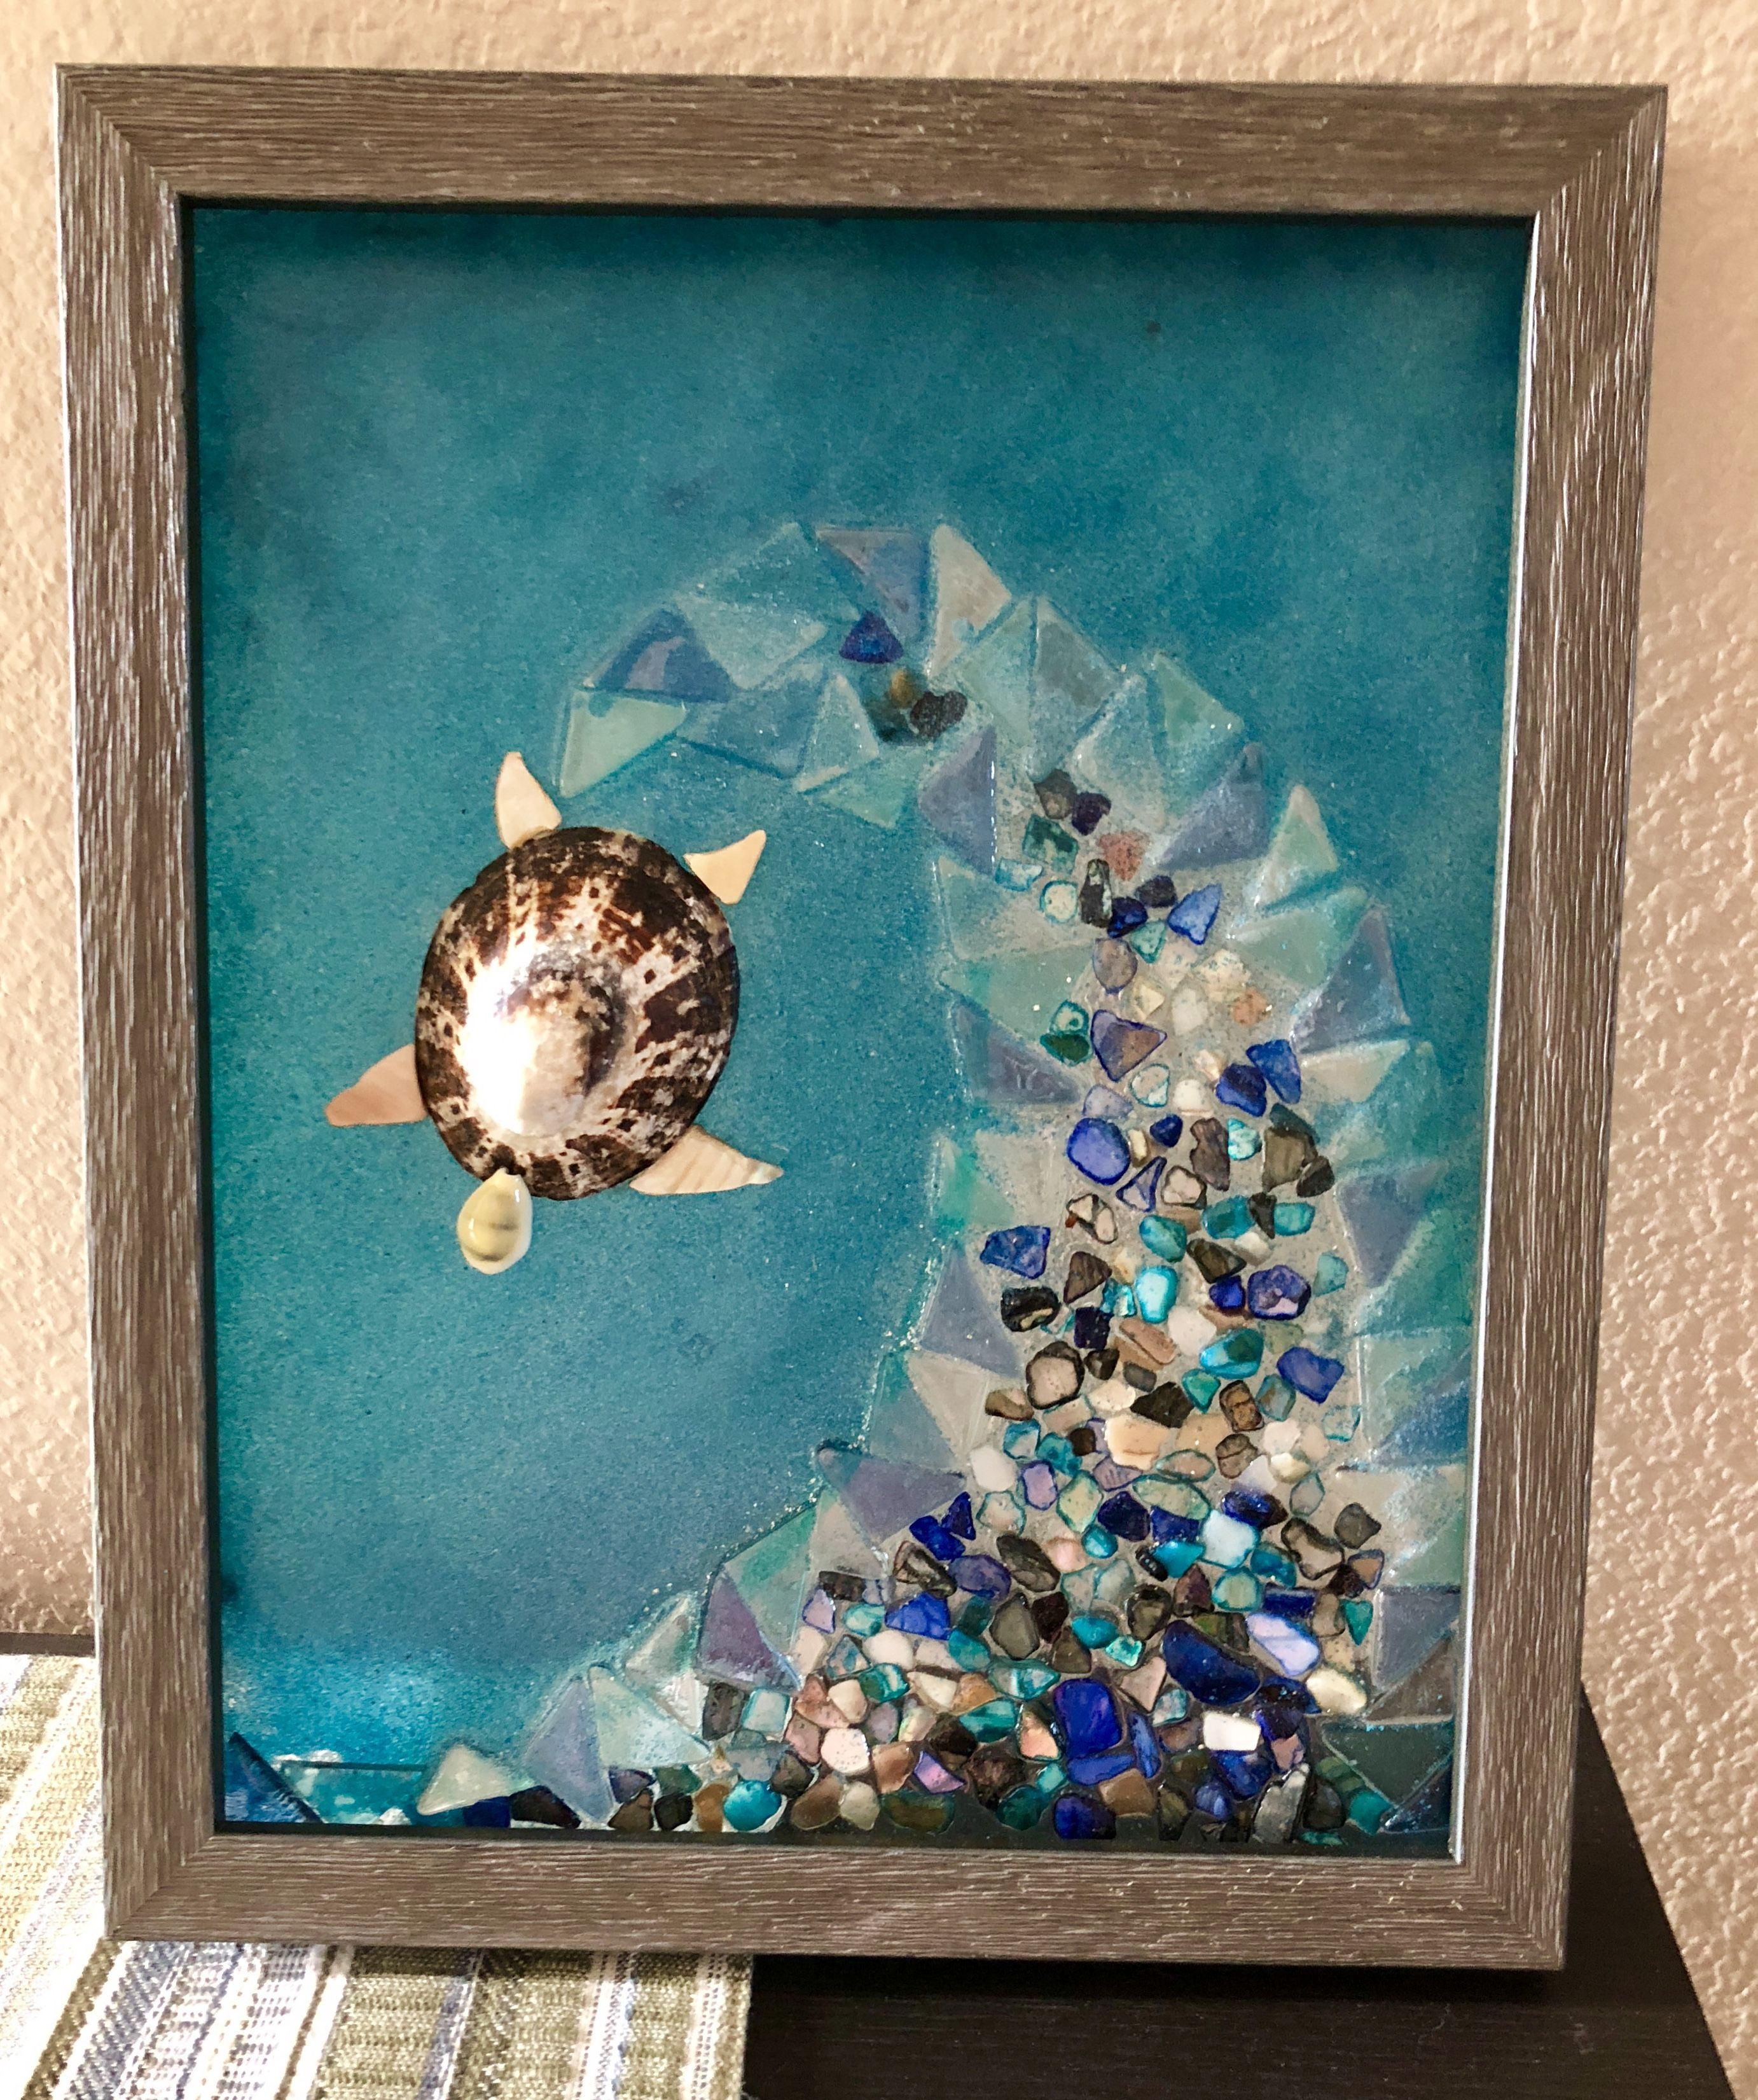 Resin Glass Art I Used Resin To Adhere Sea Glass And Colored Broken Shell Pieces To Create A Wave On Floa Glass Art Pictures Sea Glass Art Glass Art Projects